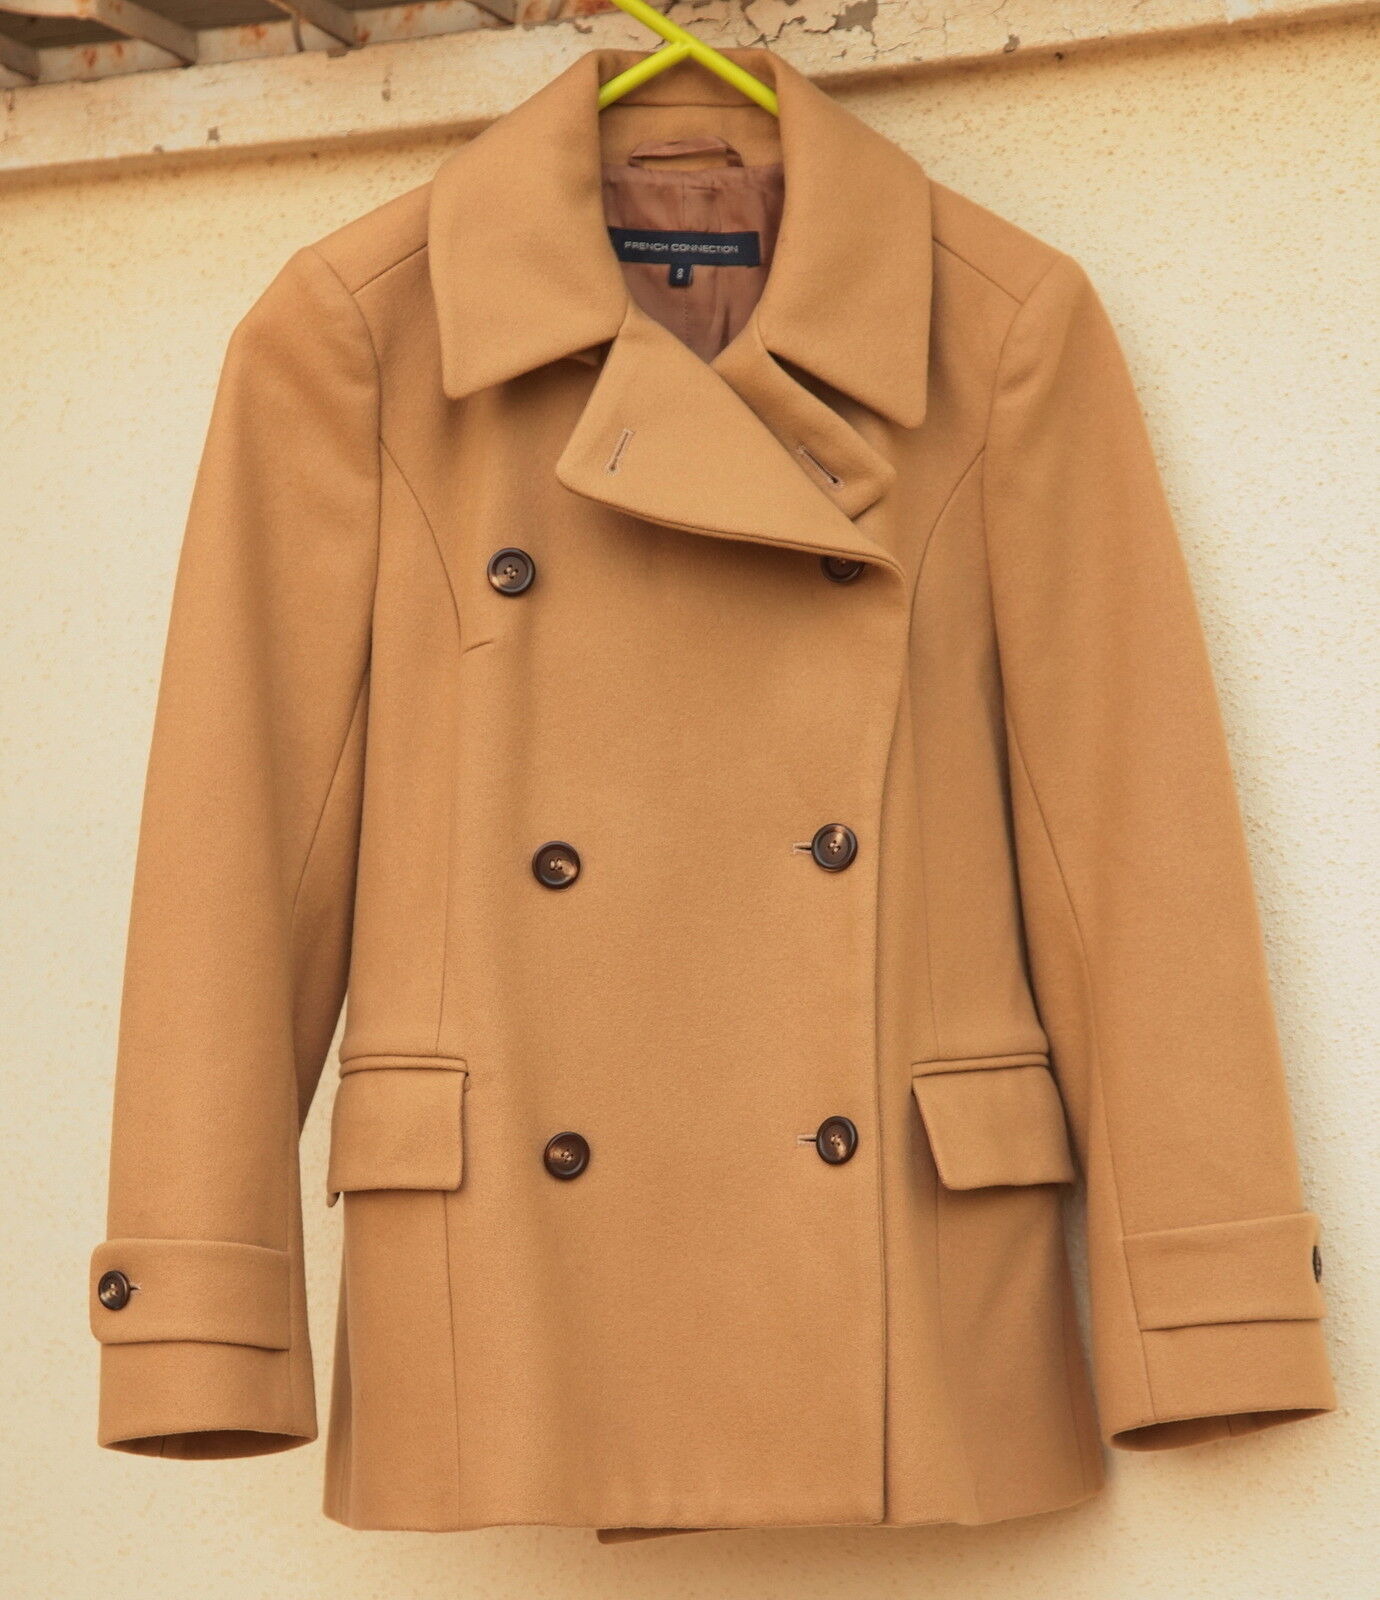 FRENCH CONNECTION Womens Double Breasted Wool Blend Lined Tan color Coat SIZE 8